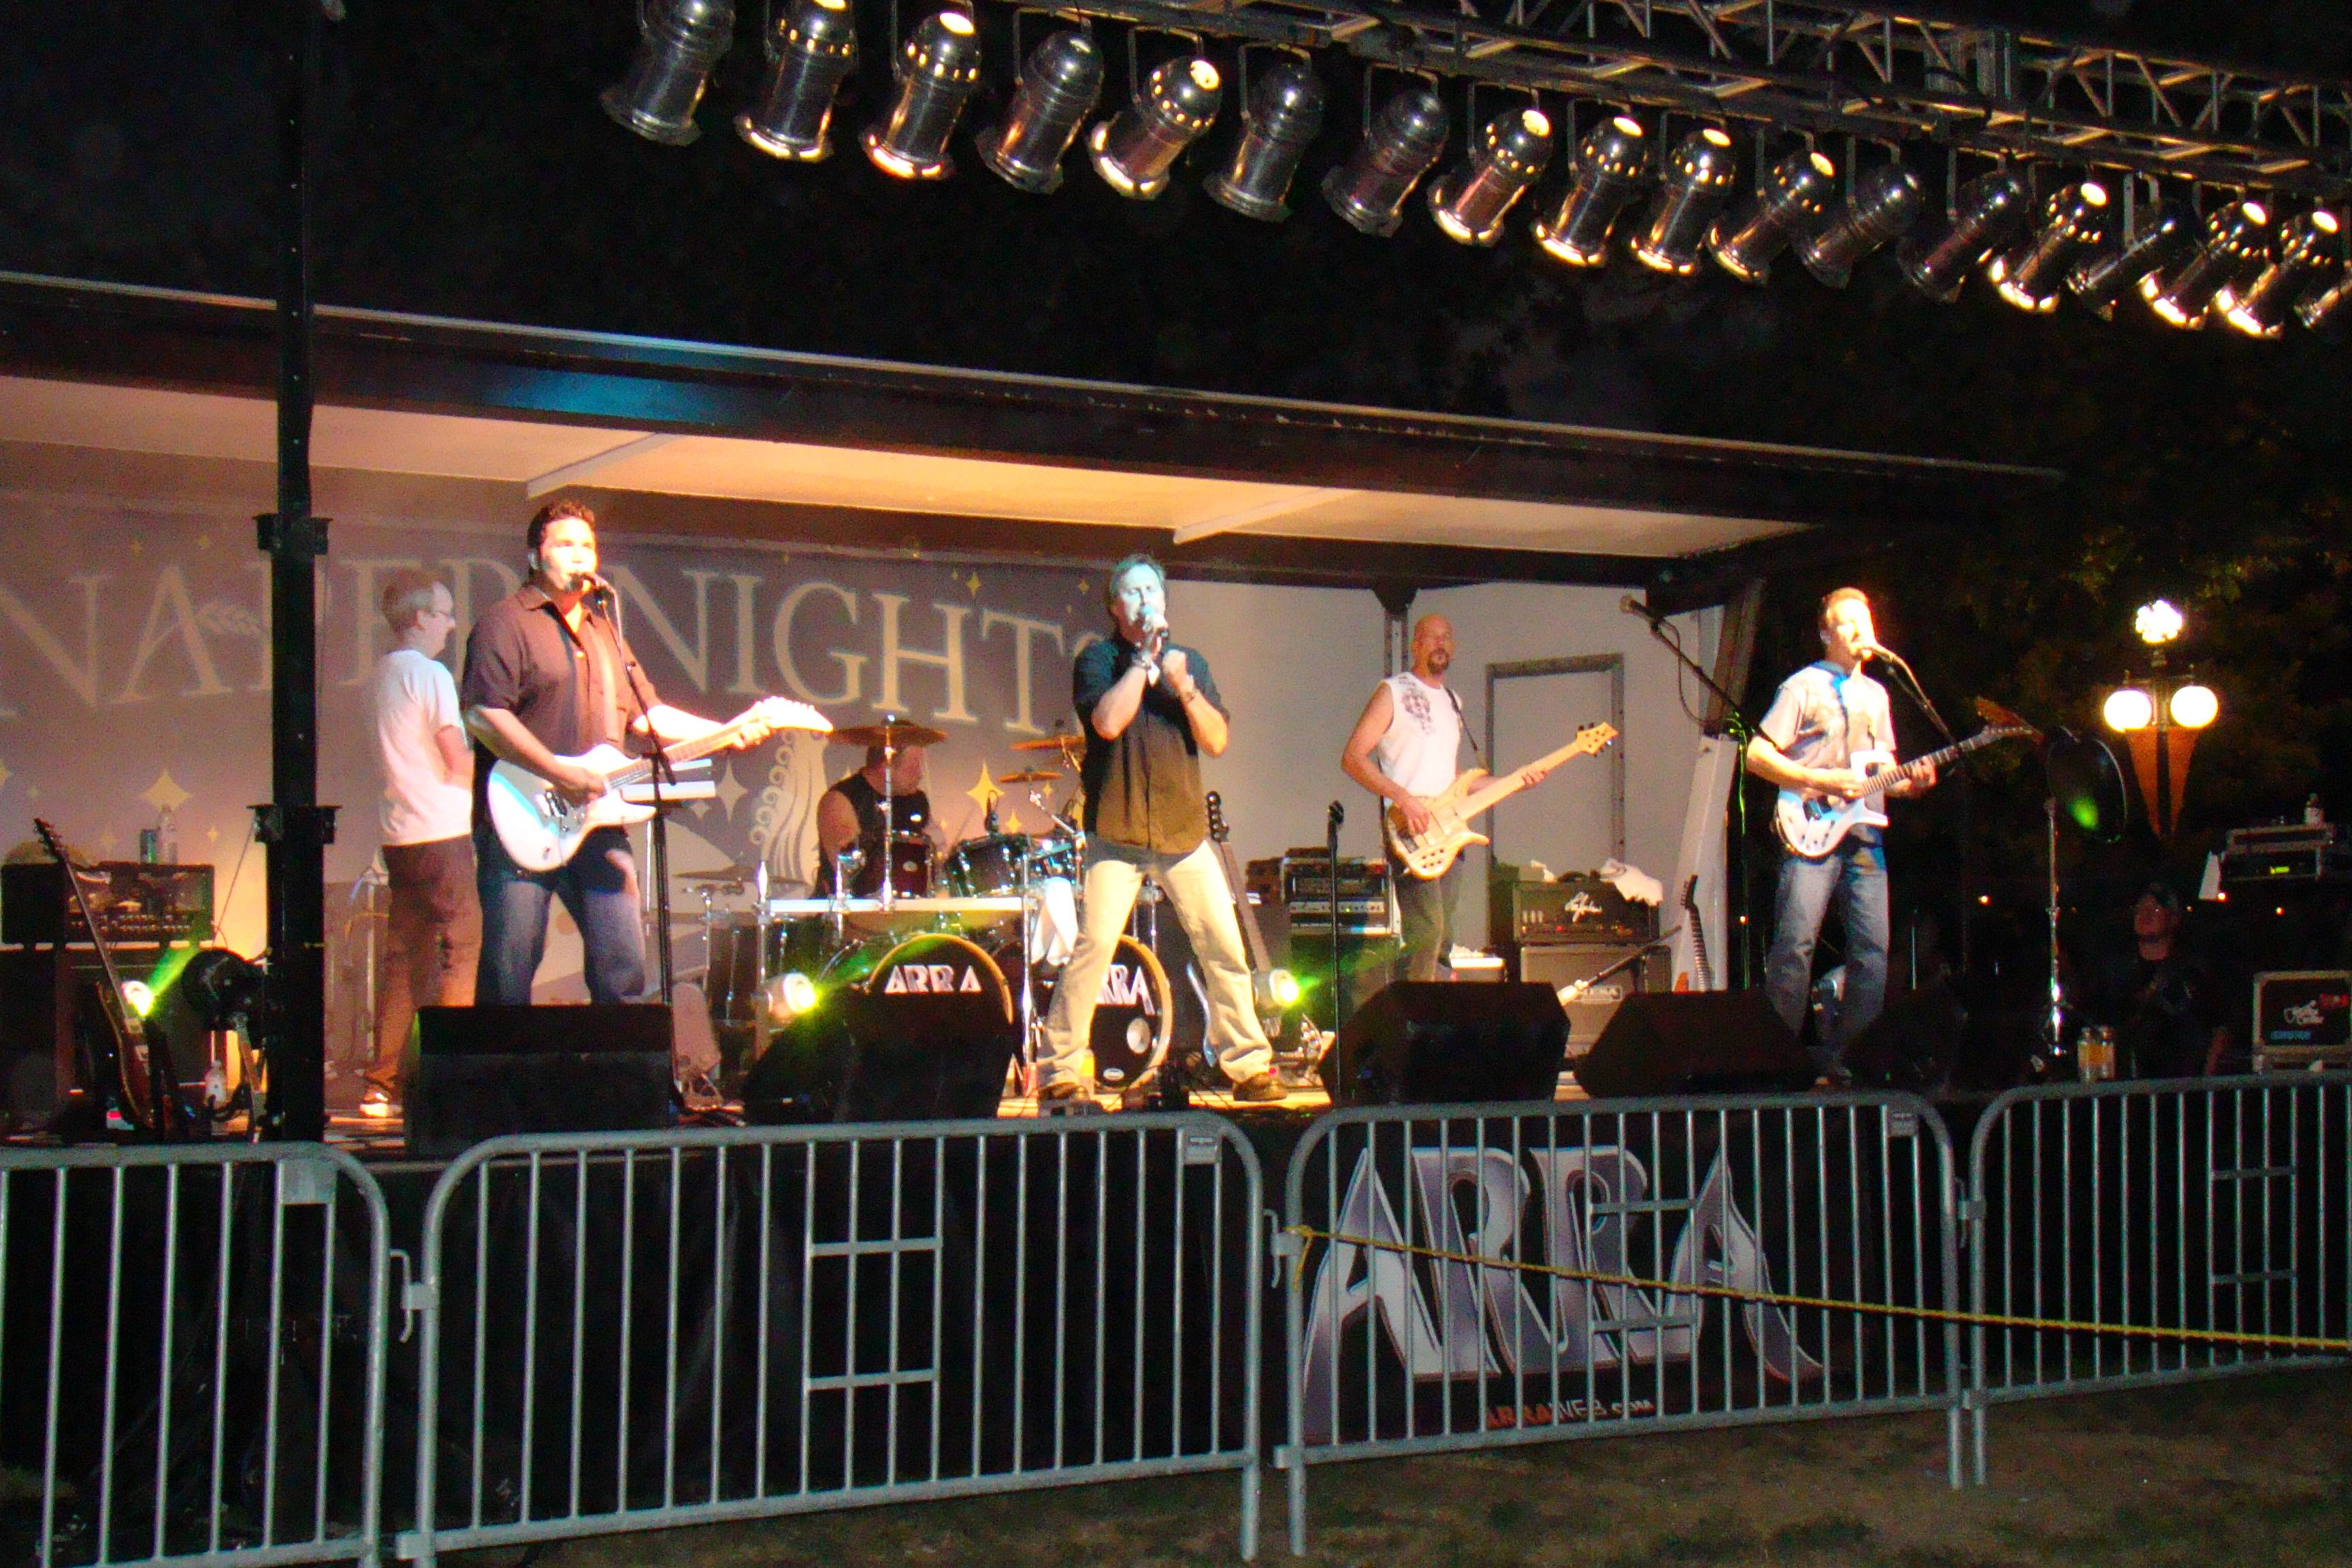 ARRA will perform at the Naper Nights Concert Series on Saturday, July 27.